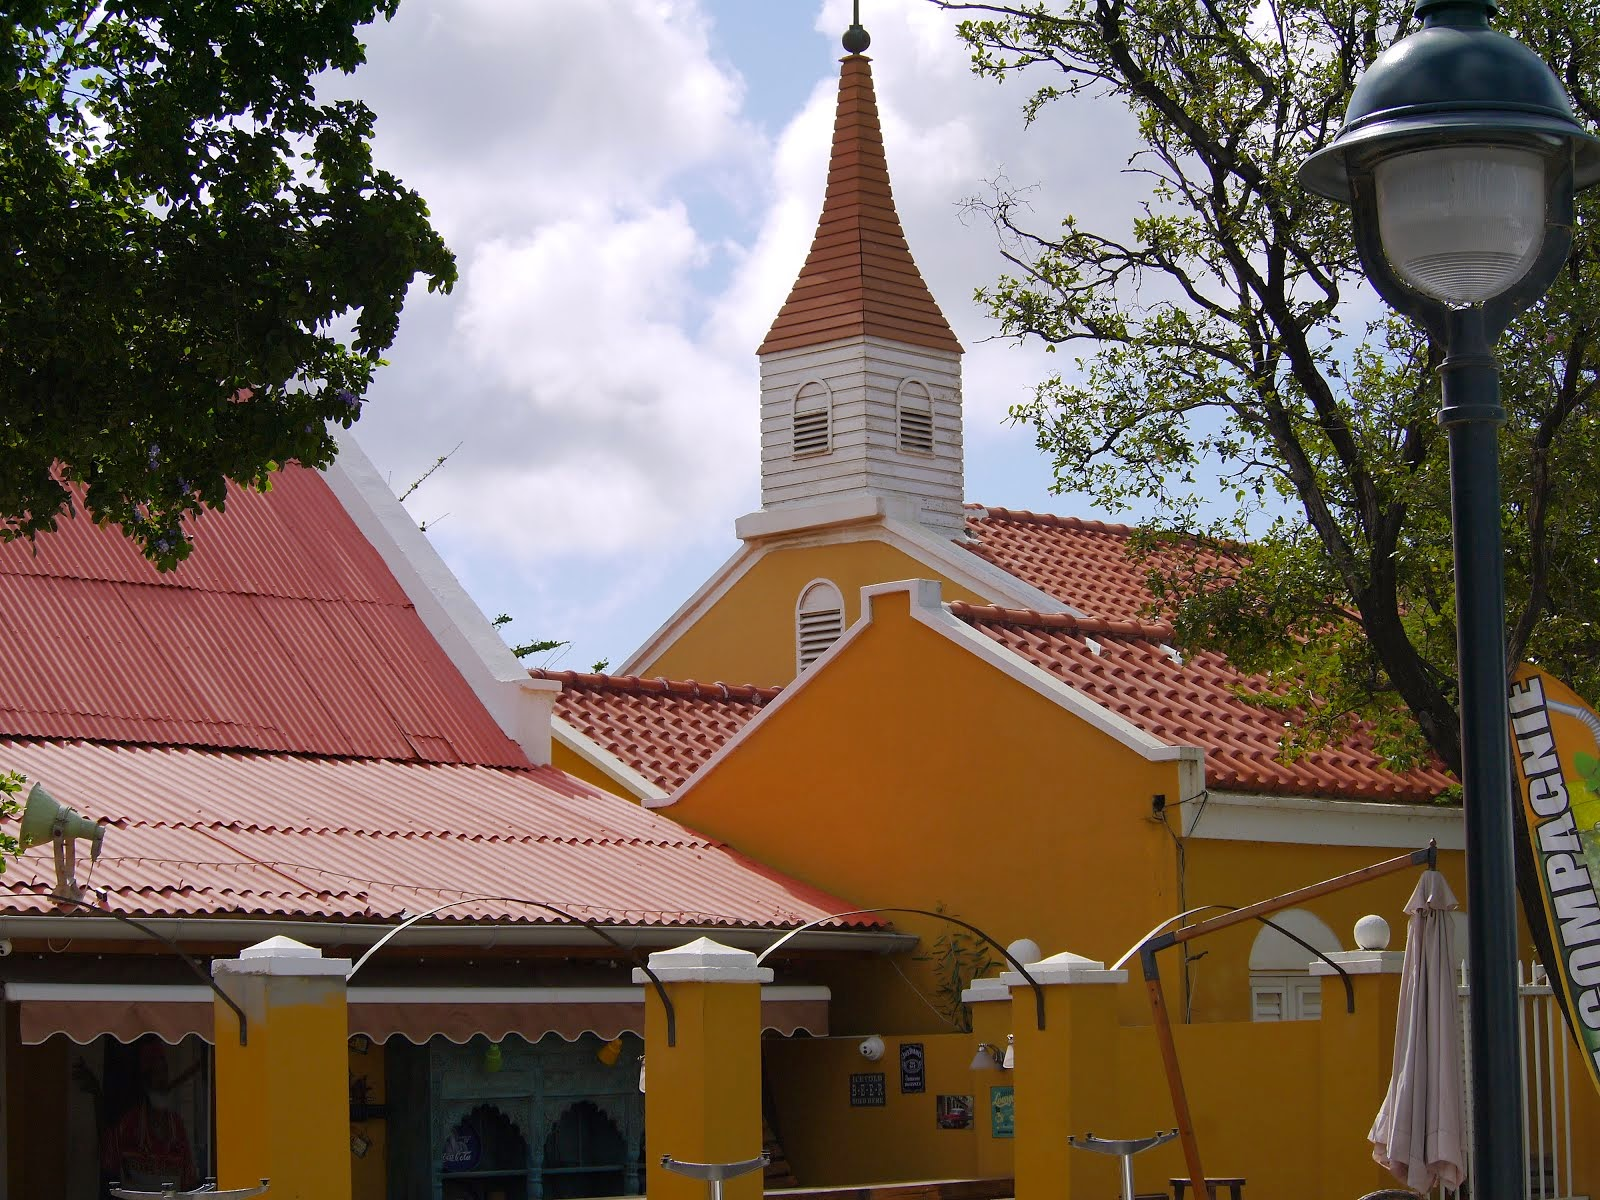 News from Bonaire